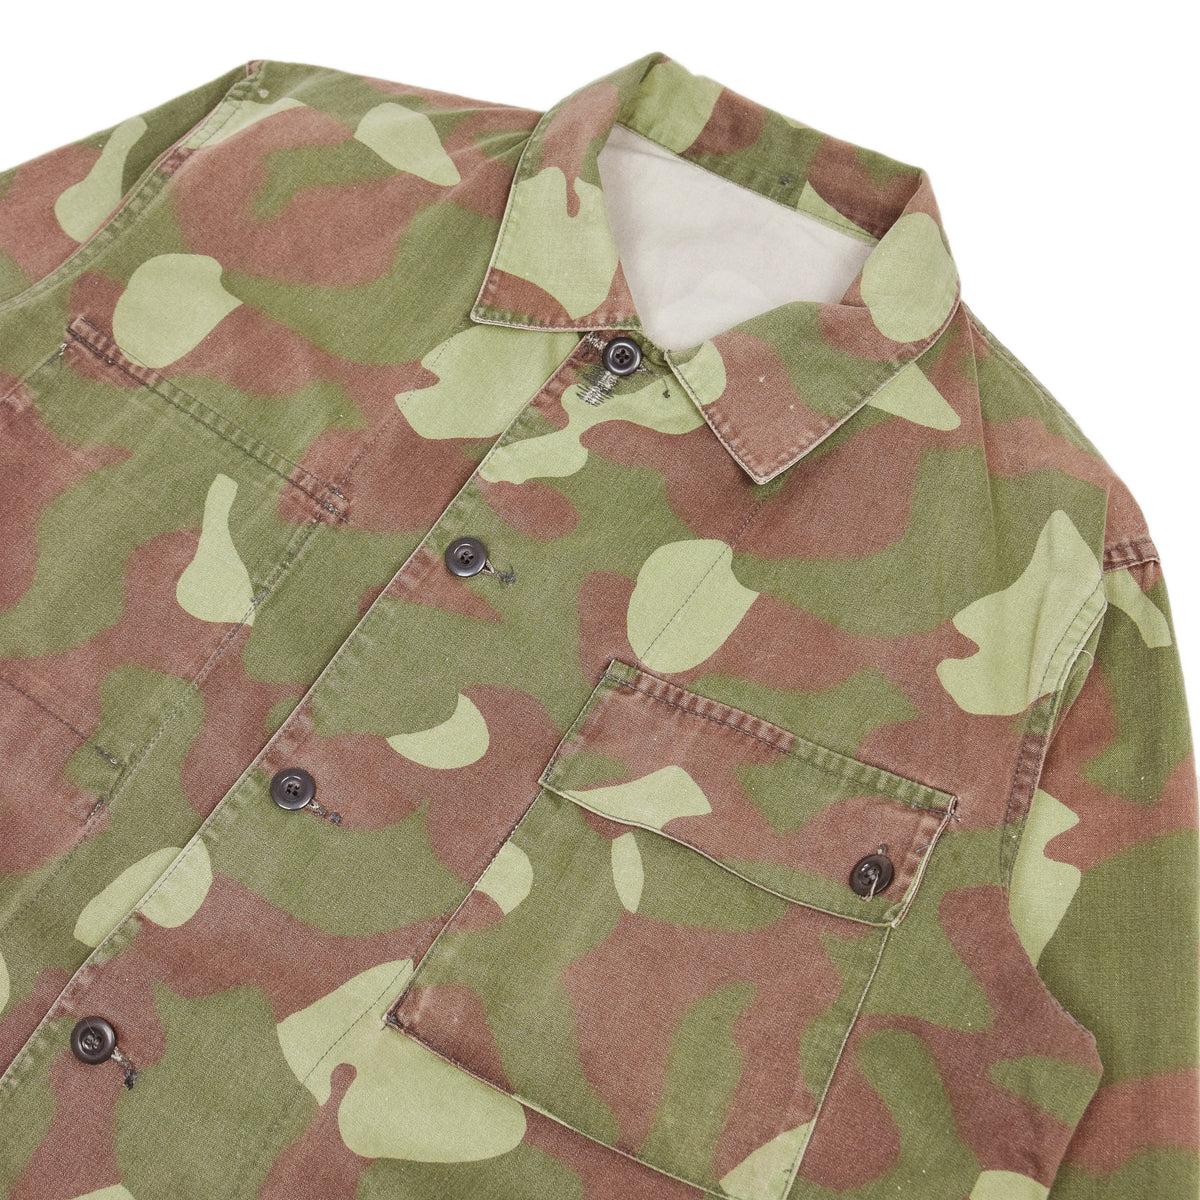 Vintage 80s Military Finnish Army Green Camo Mountain Field Jacket XL chest